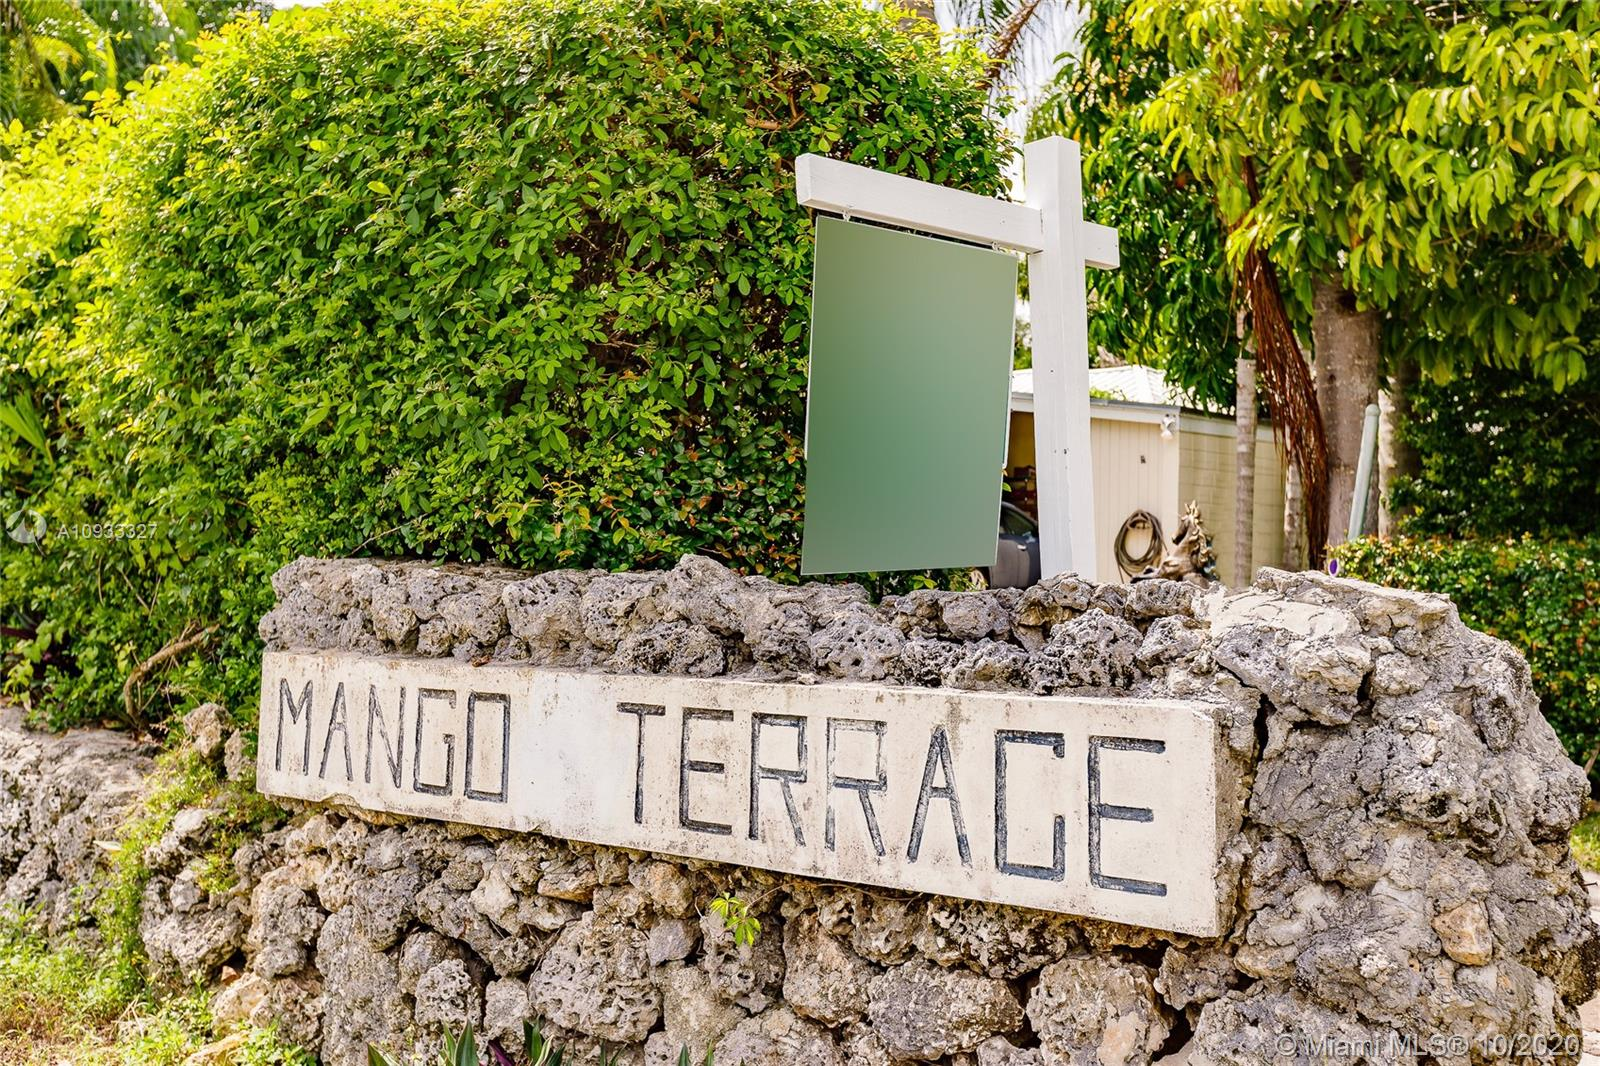 RARE FIND: 3 bedroom 2 bath 1 covered carport home on 11,999 Sq. Ft. lot at sought after  Mango Terrace. Property has impact windows, new roof, alarm system, appliances, hard wood floors, skylight in master bath, fence around property and a Certified State Farm Inspection for insurance. West side of house can be converted to a kennel. East side of house provides access to back yard and ability to park an RV or boat. Huge back yard with mango and shade trees provide a relaxing oasis with plenty of room for a pool or additions. Great home for entertaining with ample parking around it. Centrally located close to Metro Rail, major highways, UM, Dadeland & South Miami nightlife/restaurants. Quiet, arbored, well kept neighborhood for pleasant walks at one of South Floridas best places to live.